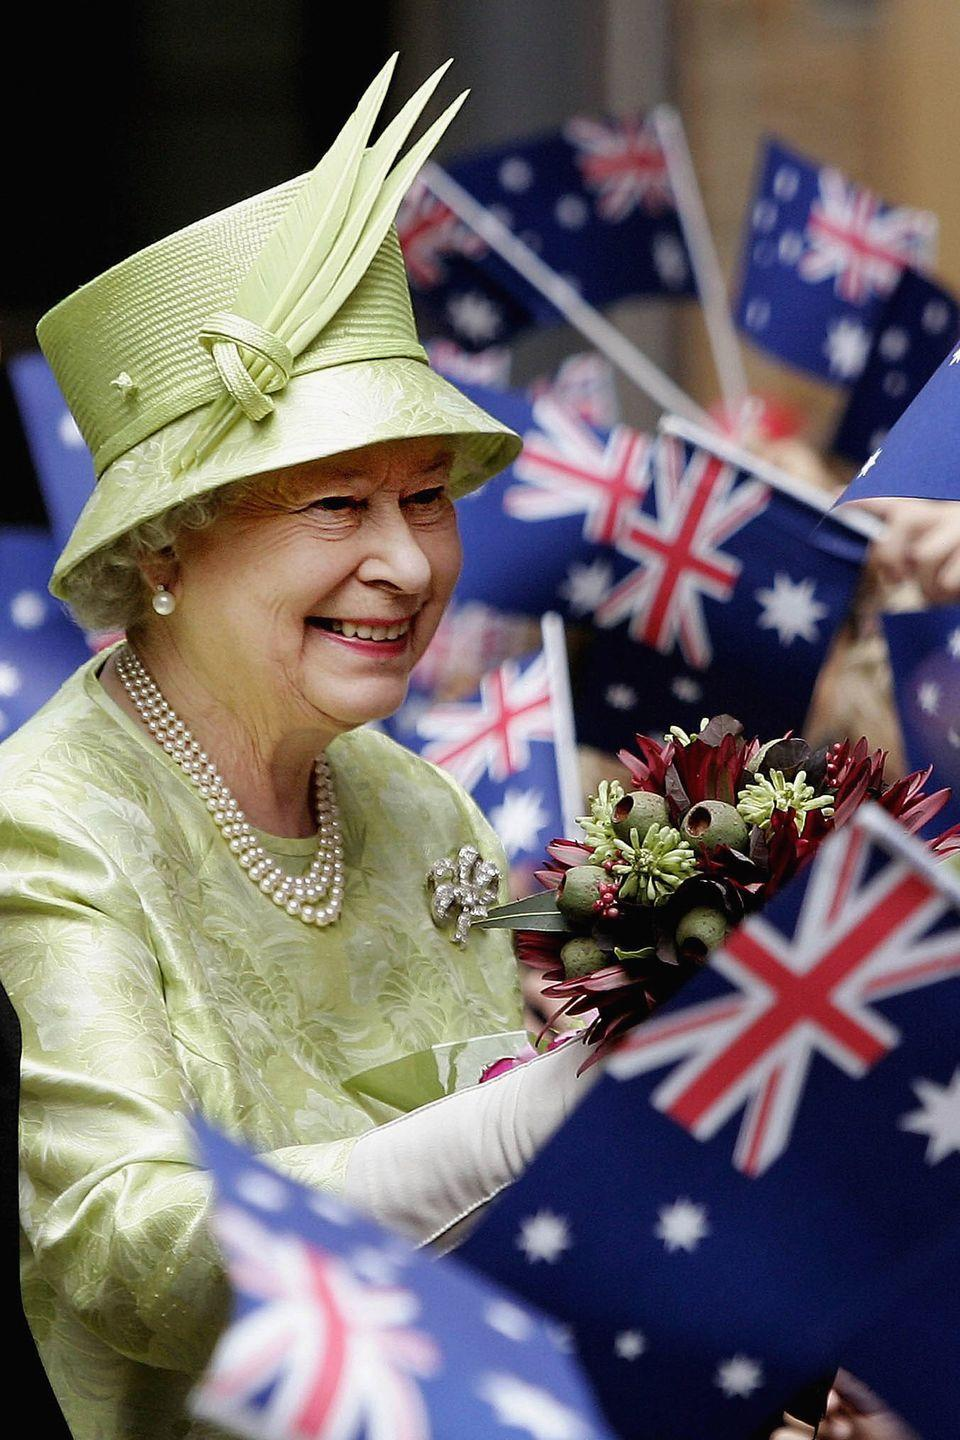 <p>The large crowd waving Australian flags greeted Queen Elizabeth after a Commonwealth Day Service. At the time, she and her husband were on a five-day long trip to Australia where she opened up the Commonwealth Games in Melbourne.</p>